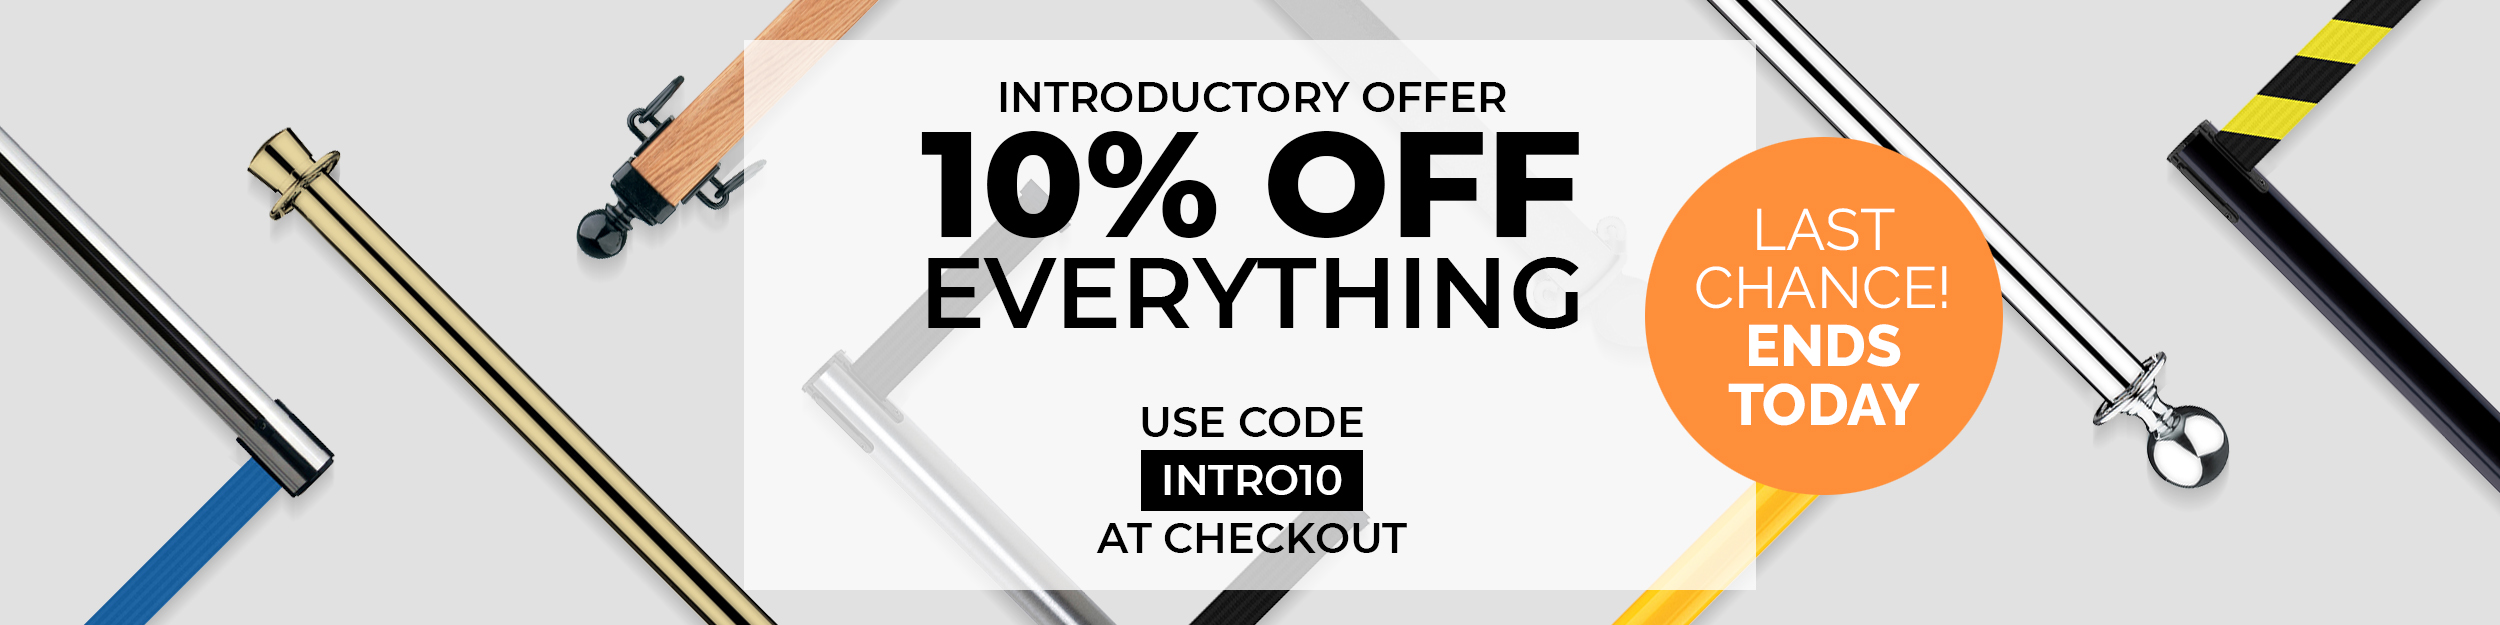 10% Off Everything! Last Chance! Ends Today